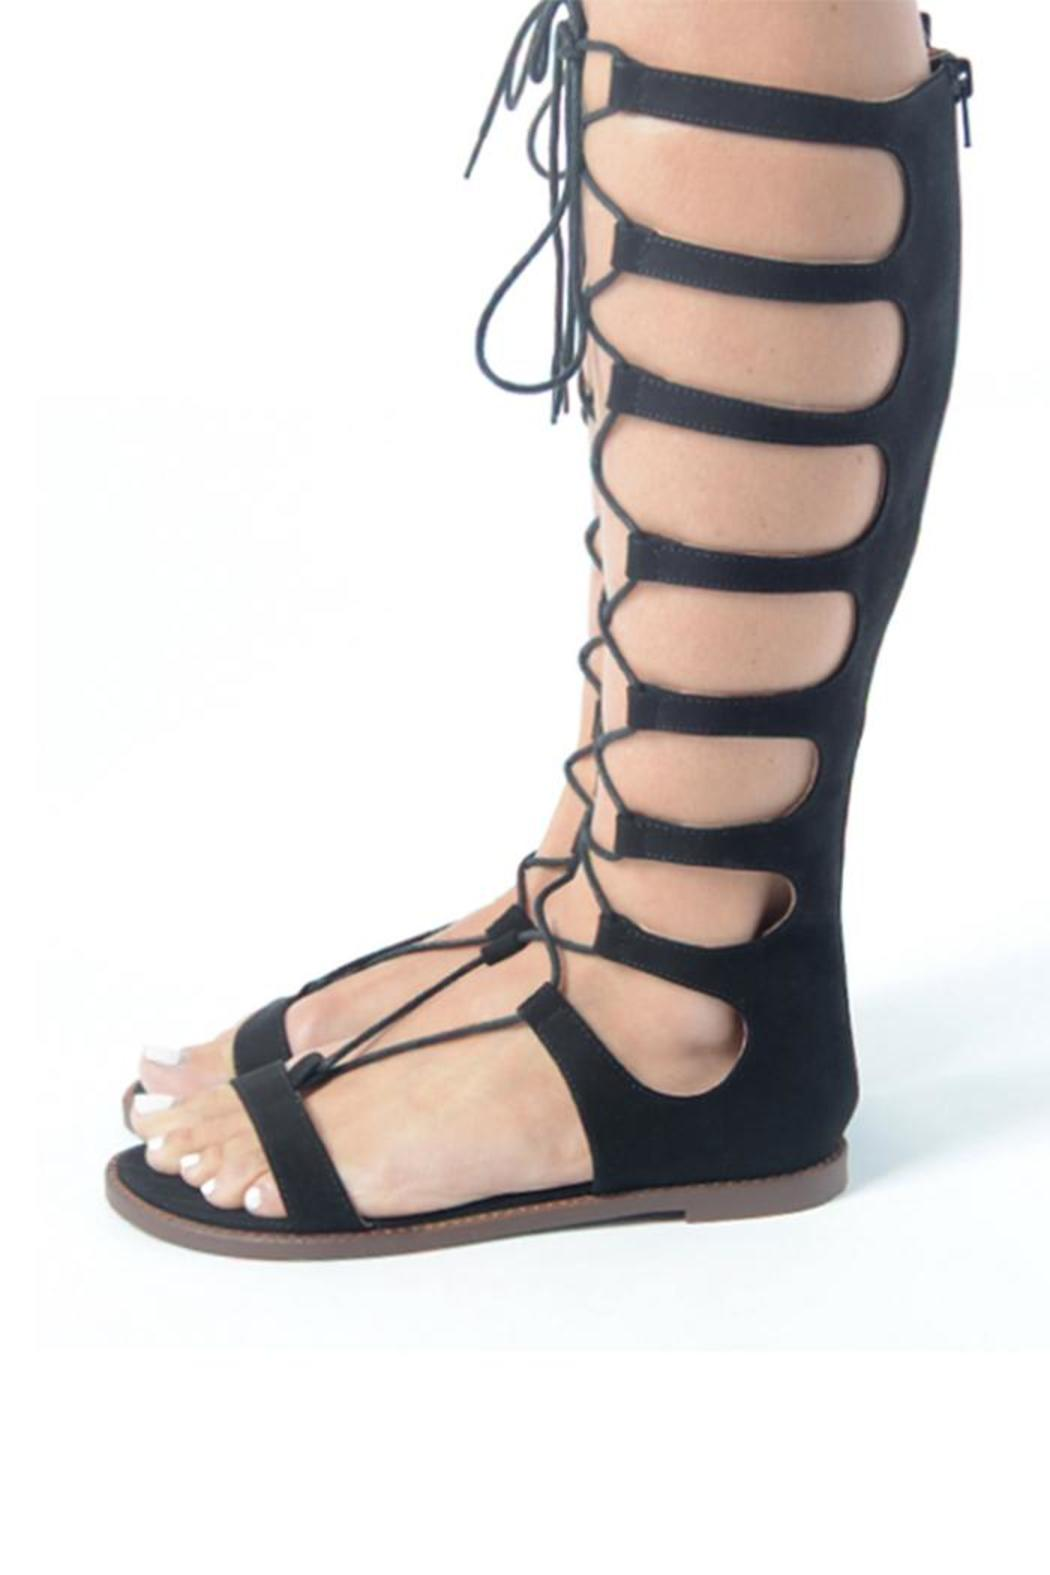 49405e5af0cd75 Chinese Laundry Galactic Gladiator Sandal from Miami by Linda ...